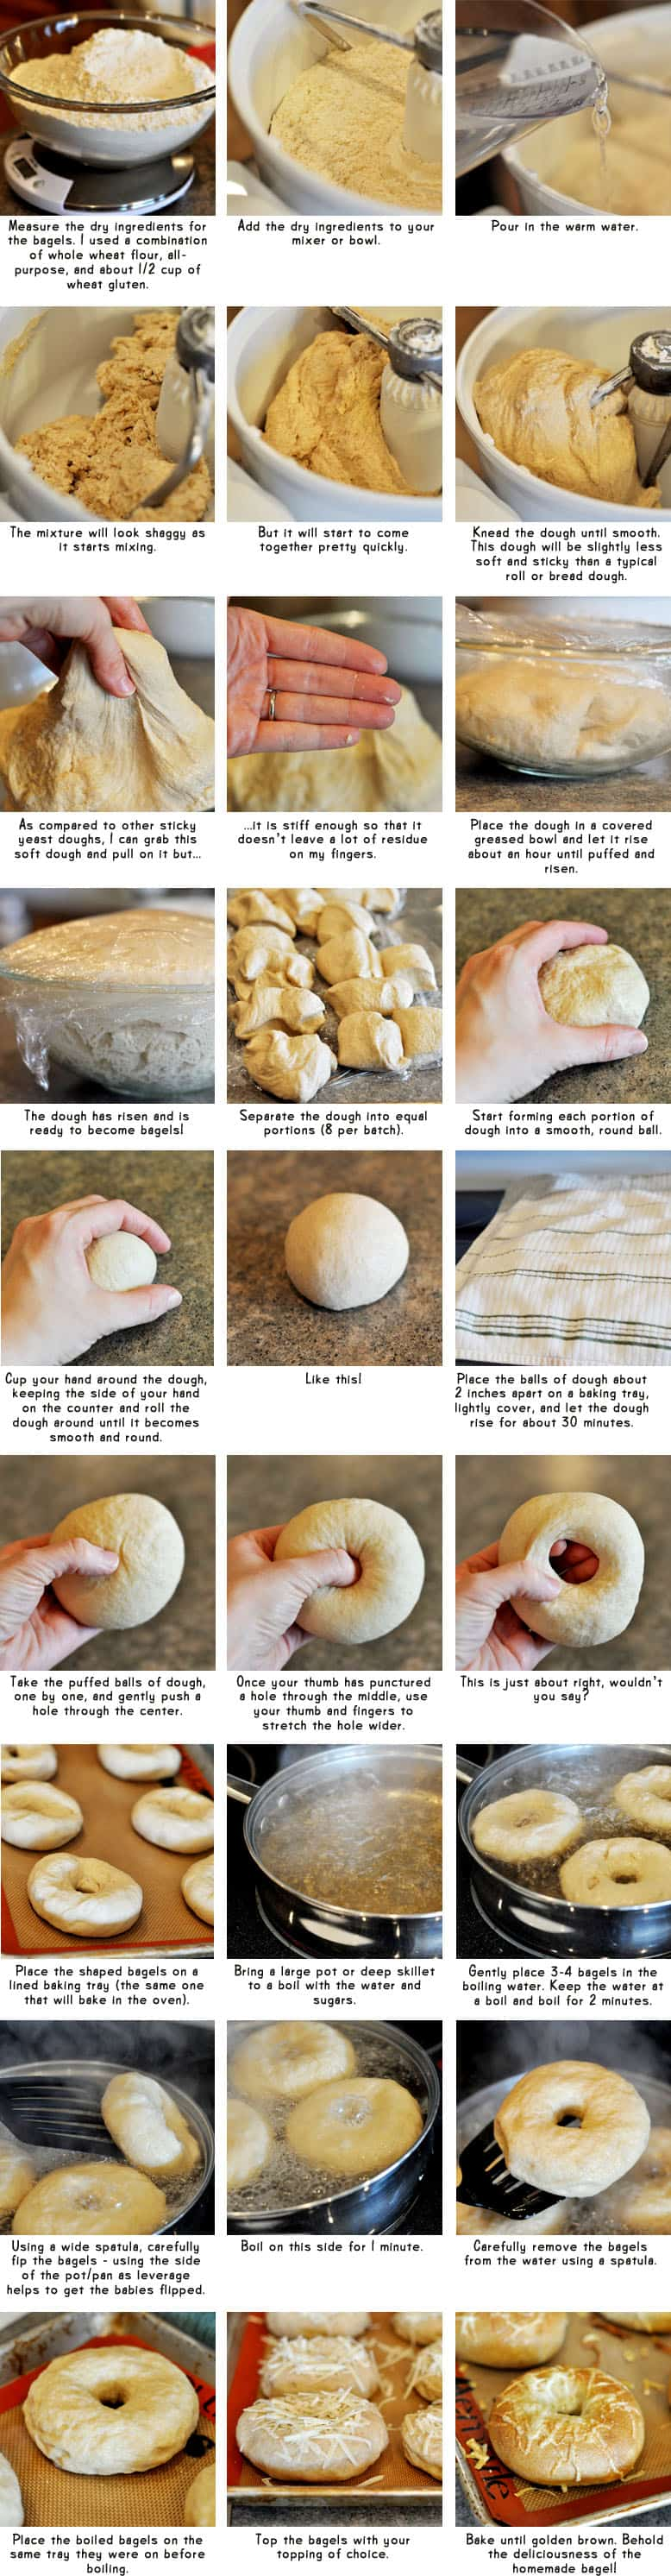 step-by-step collage of how to make bagels from scratch